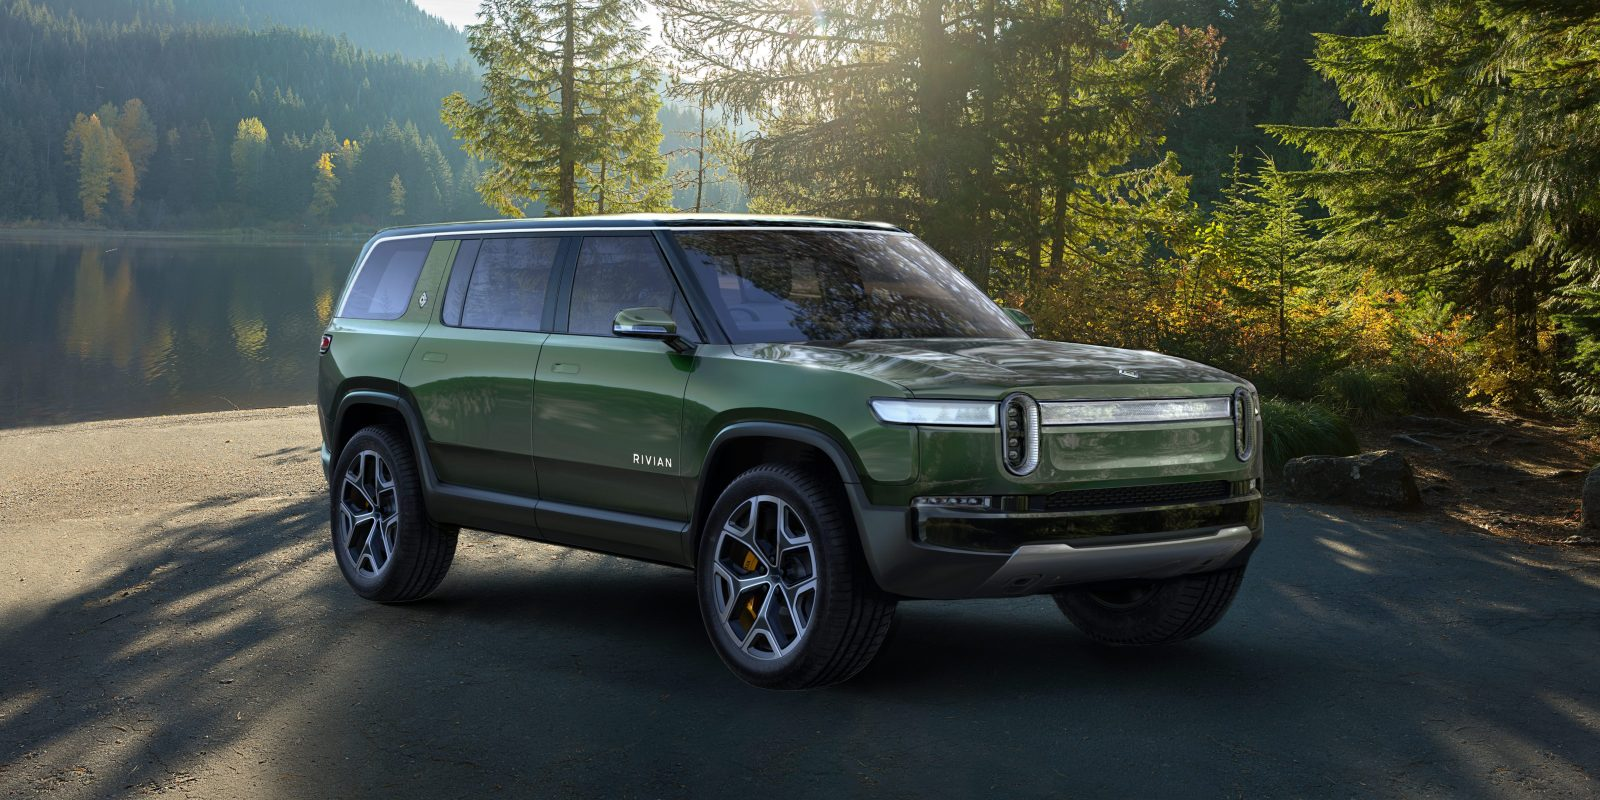 Rivian Launches All Electric 7 Seat Suv With Over 410 Miles Of Range